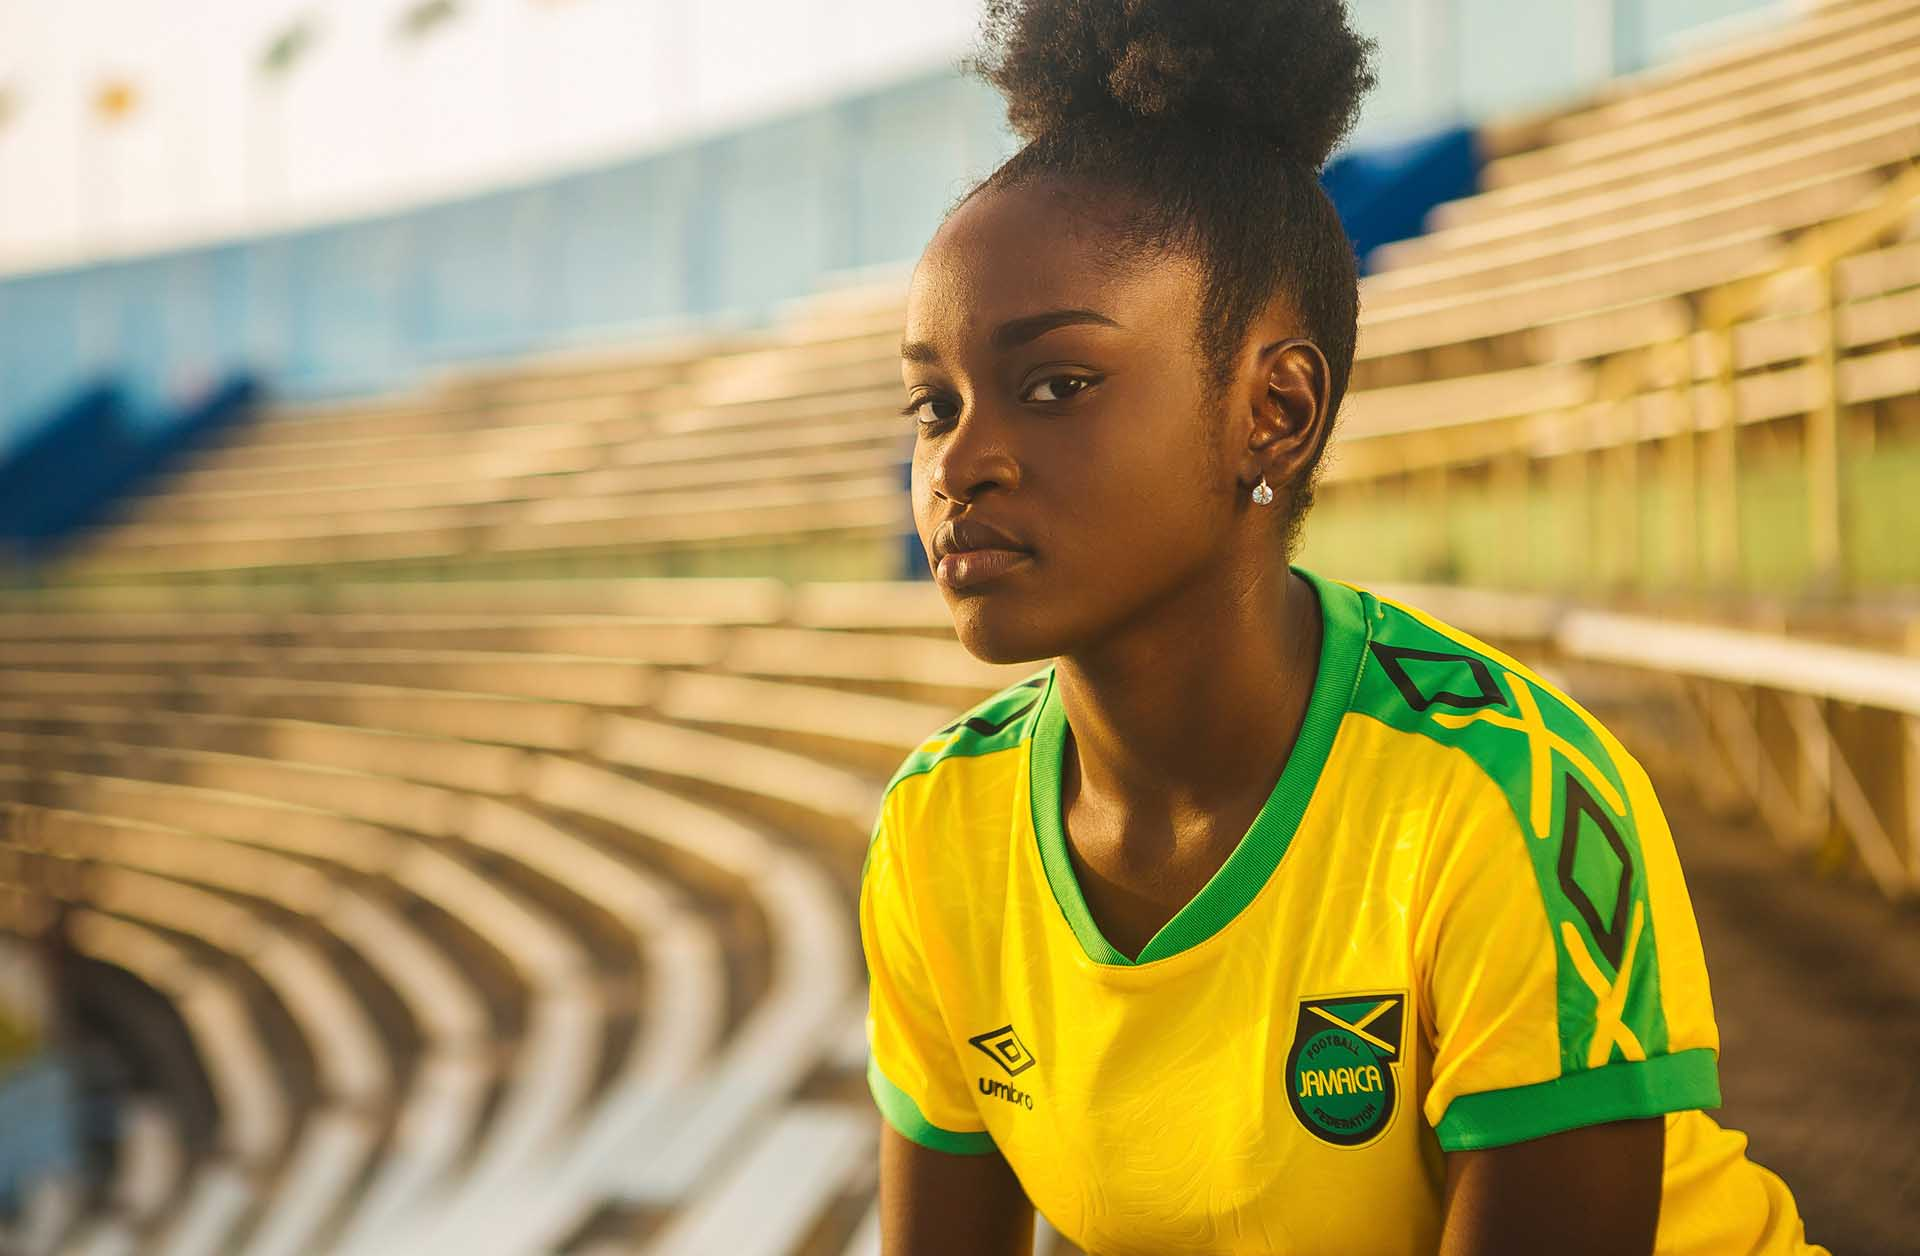 4-jamaica-umbro-design-interview.jpg